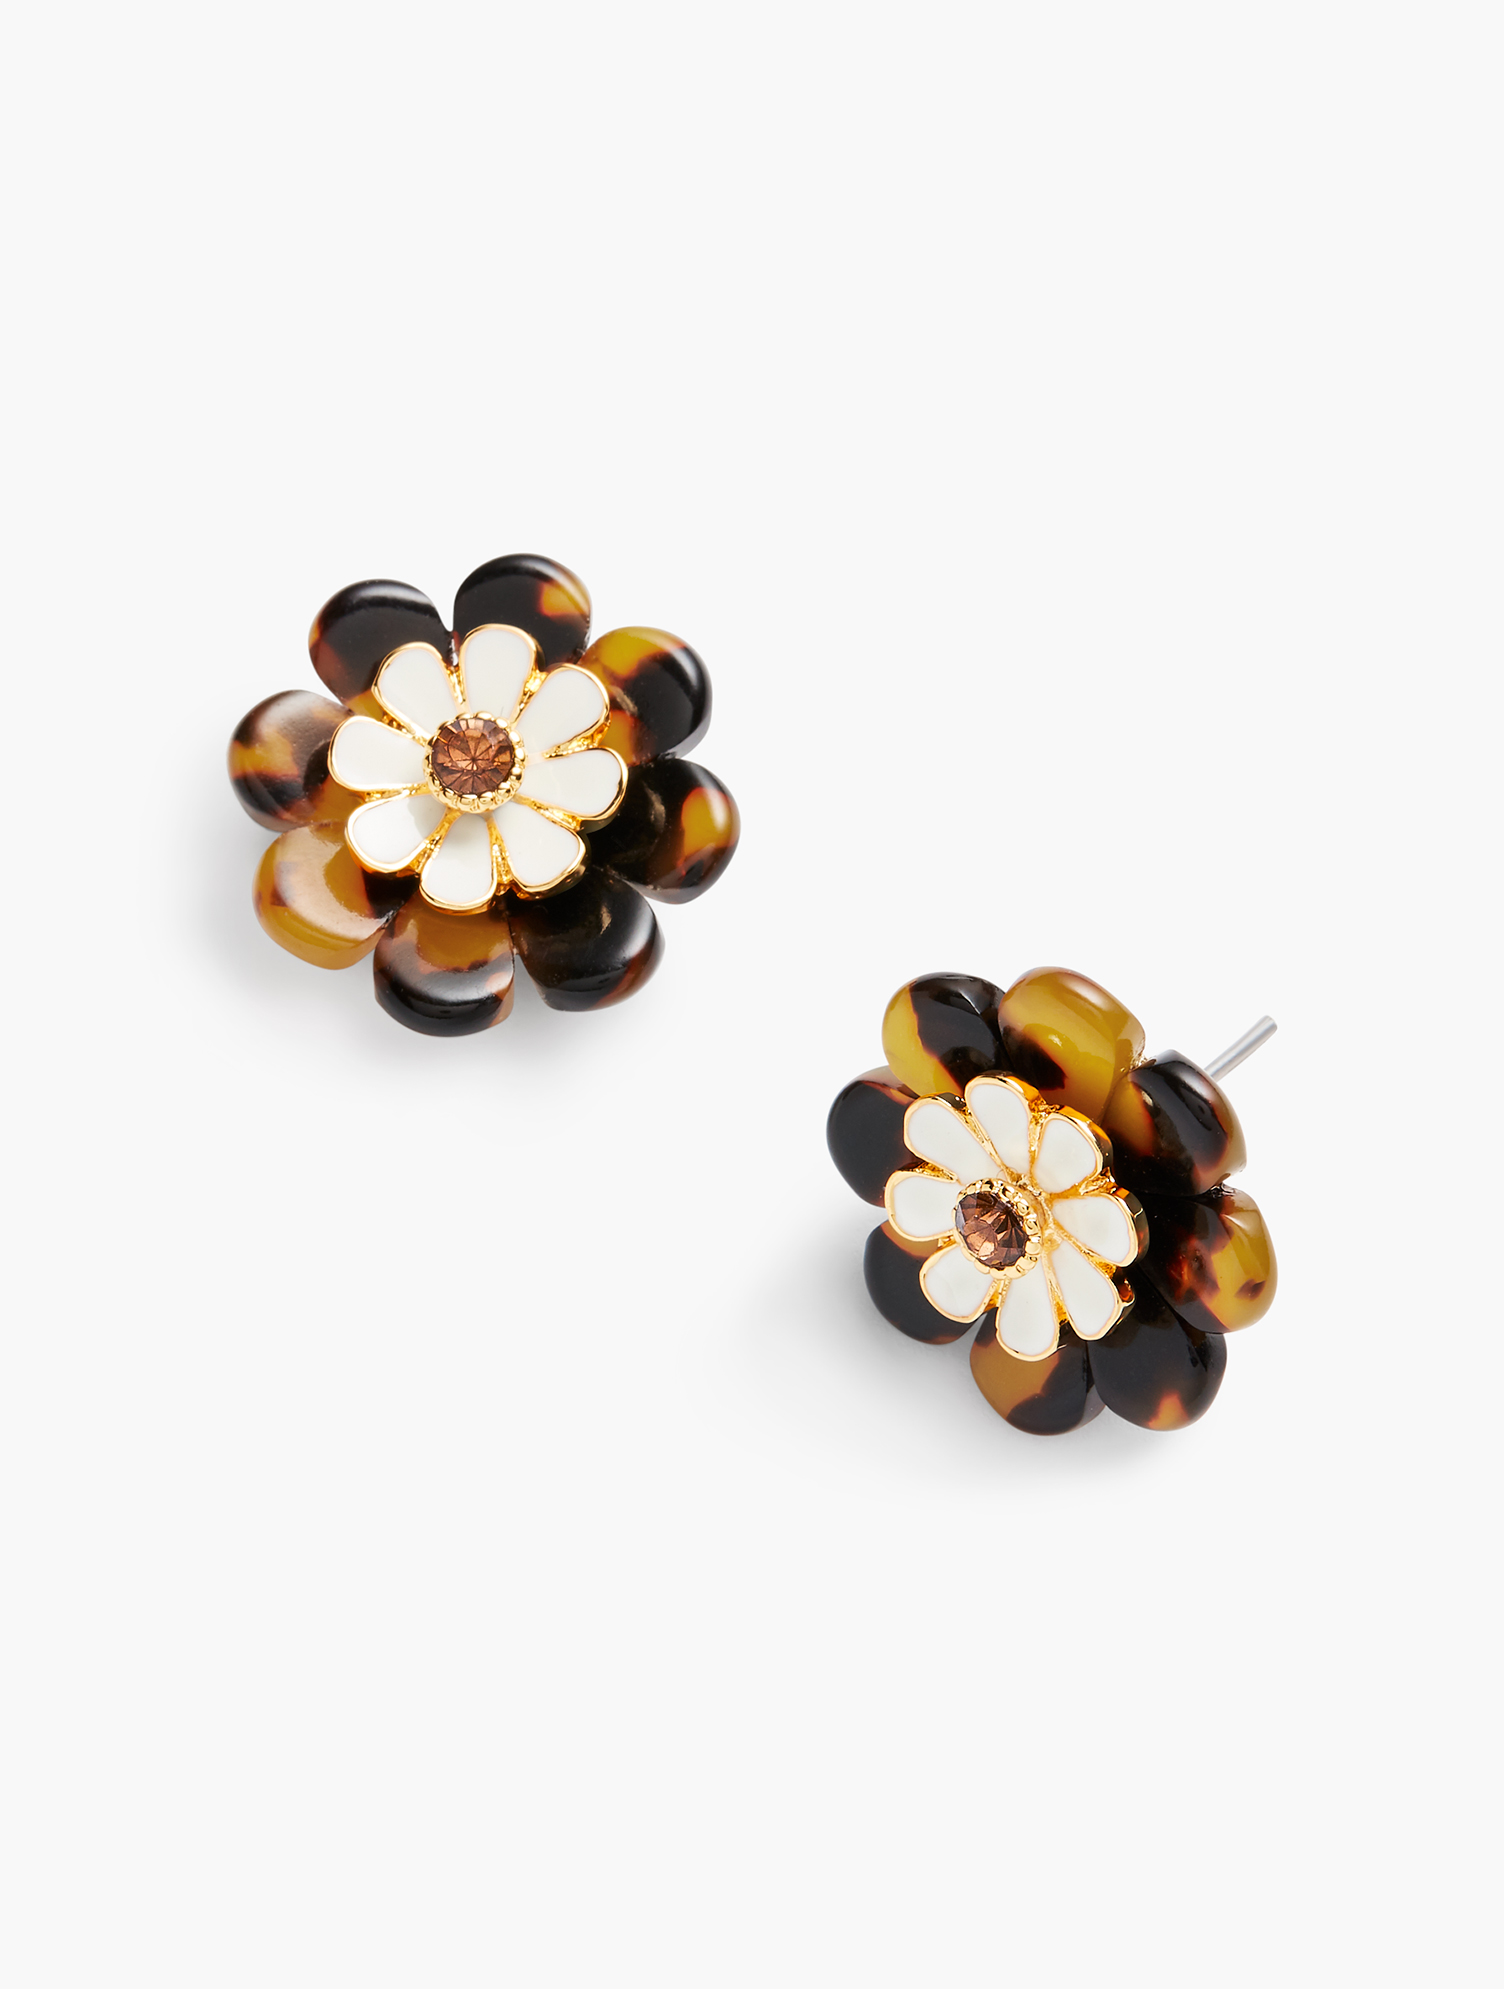 60s -70s Jewelry – Necklaces, Earrings, Rings, Bracelets Layered Tortoise Flower Earrings - TORTOISEIVORYGOLD - OS - Talbots $17.70 AT vintagedancer.com